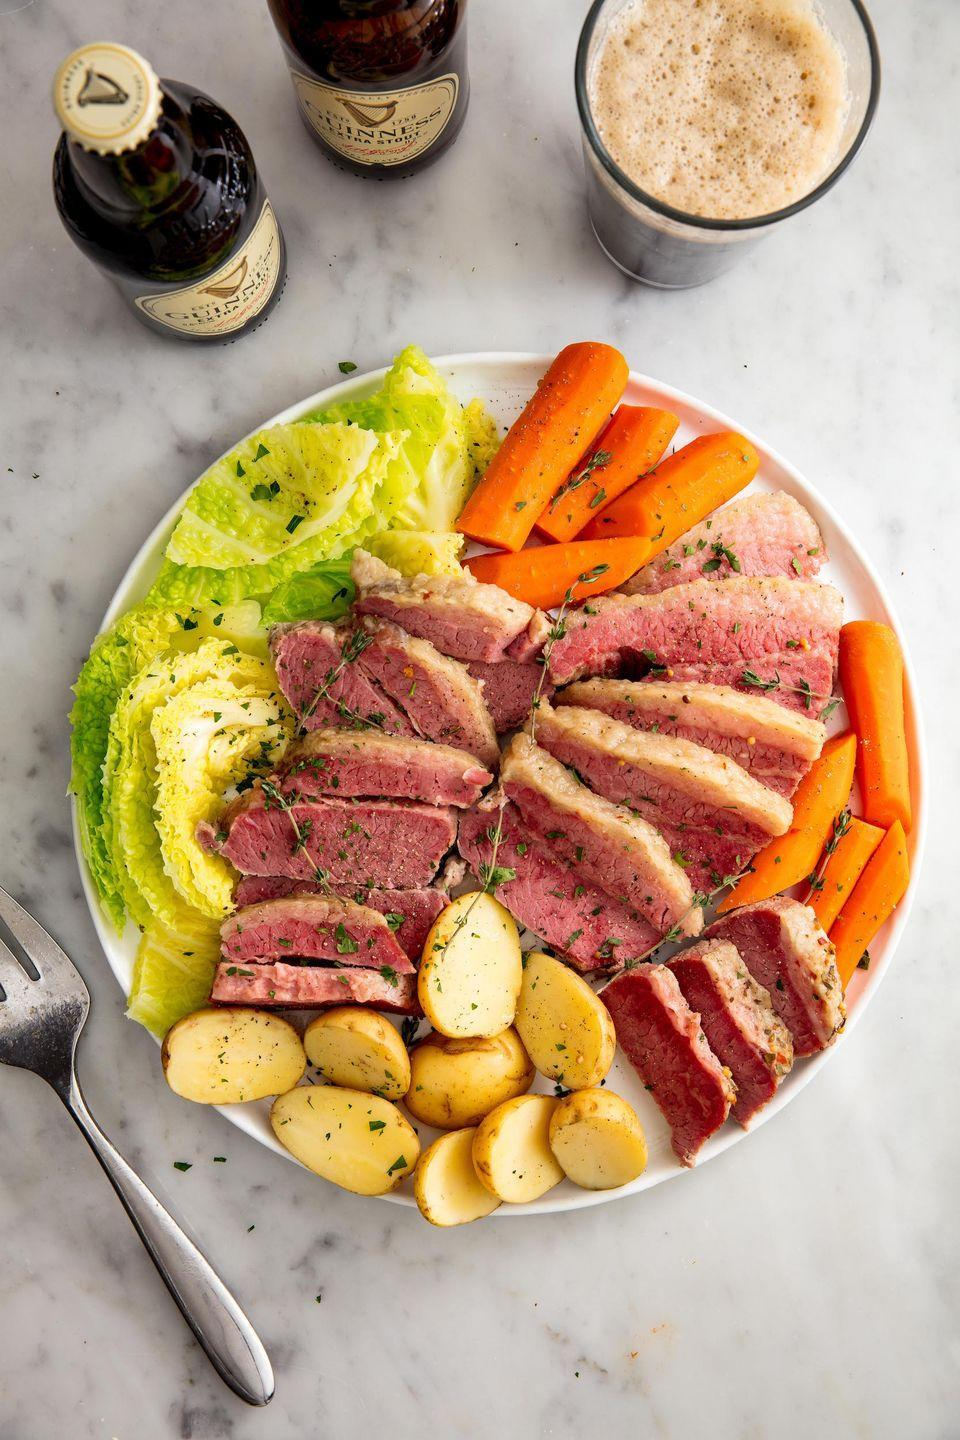 """<p>St. Patrick himself would approve.</p><p>Get the recipe from <a href=""""https://www.delish.com/cooking/recipe-ideas/recipes/a57965/slow-cooker-corned-beef-and-cabbage-recipe/"""" rel=""""nofollow noopener"""" target=""""_blank"""" data-ylk=""""slk:Delish"""" class=""""link rapid-noclick-resp"""">Delish</a>.</p>"""